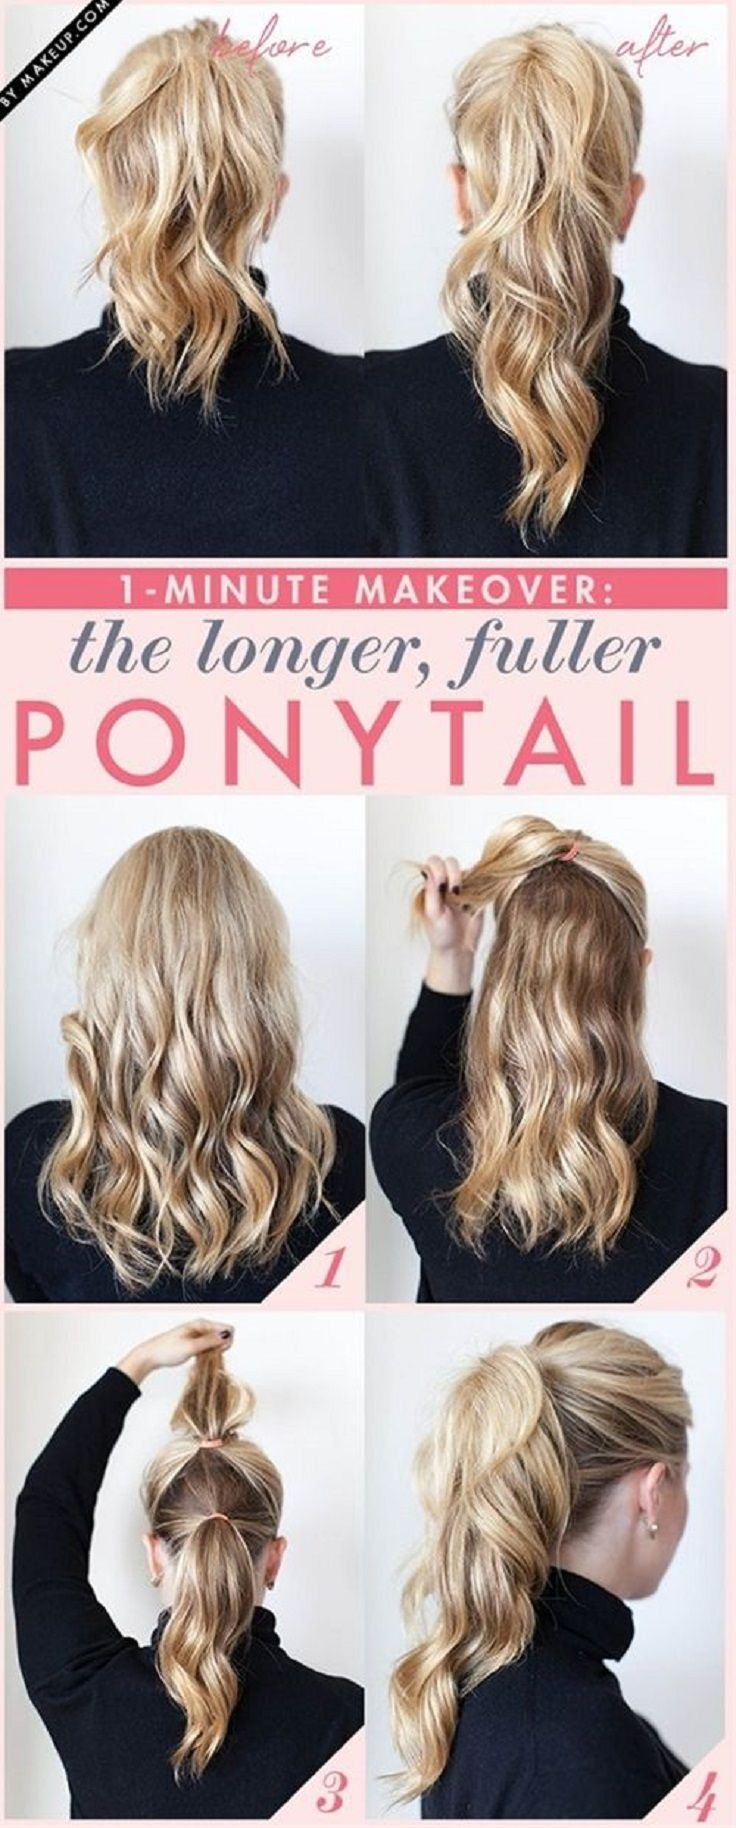 Running late to work, tea time with your ladies, or dinner date with your other half, but still clueless on what to do with your hair? That is why having chic go-to speedy 5 minutes hair styles is important! Forget complicated braids, fishtails, and 25-step chignons. These hairstyles are the ones you actually have time for. #Hairstyles